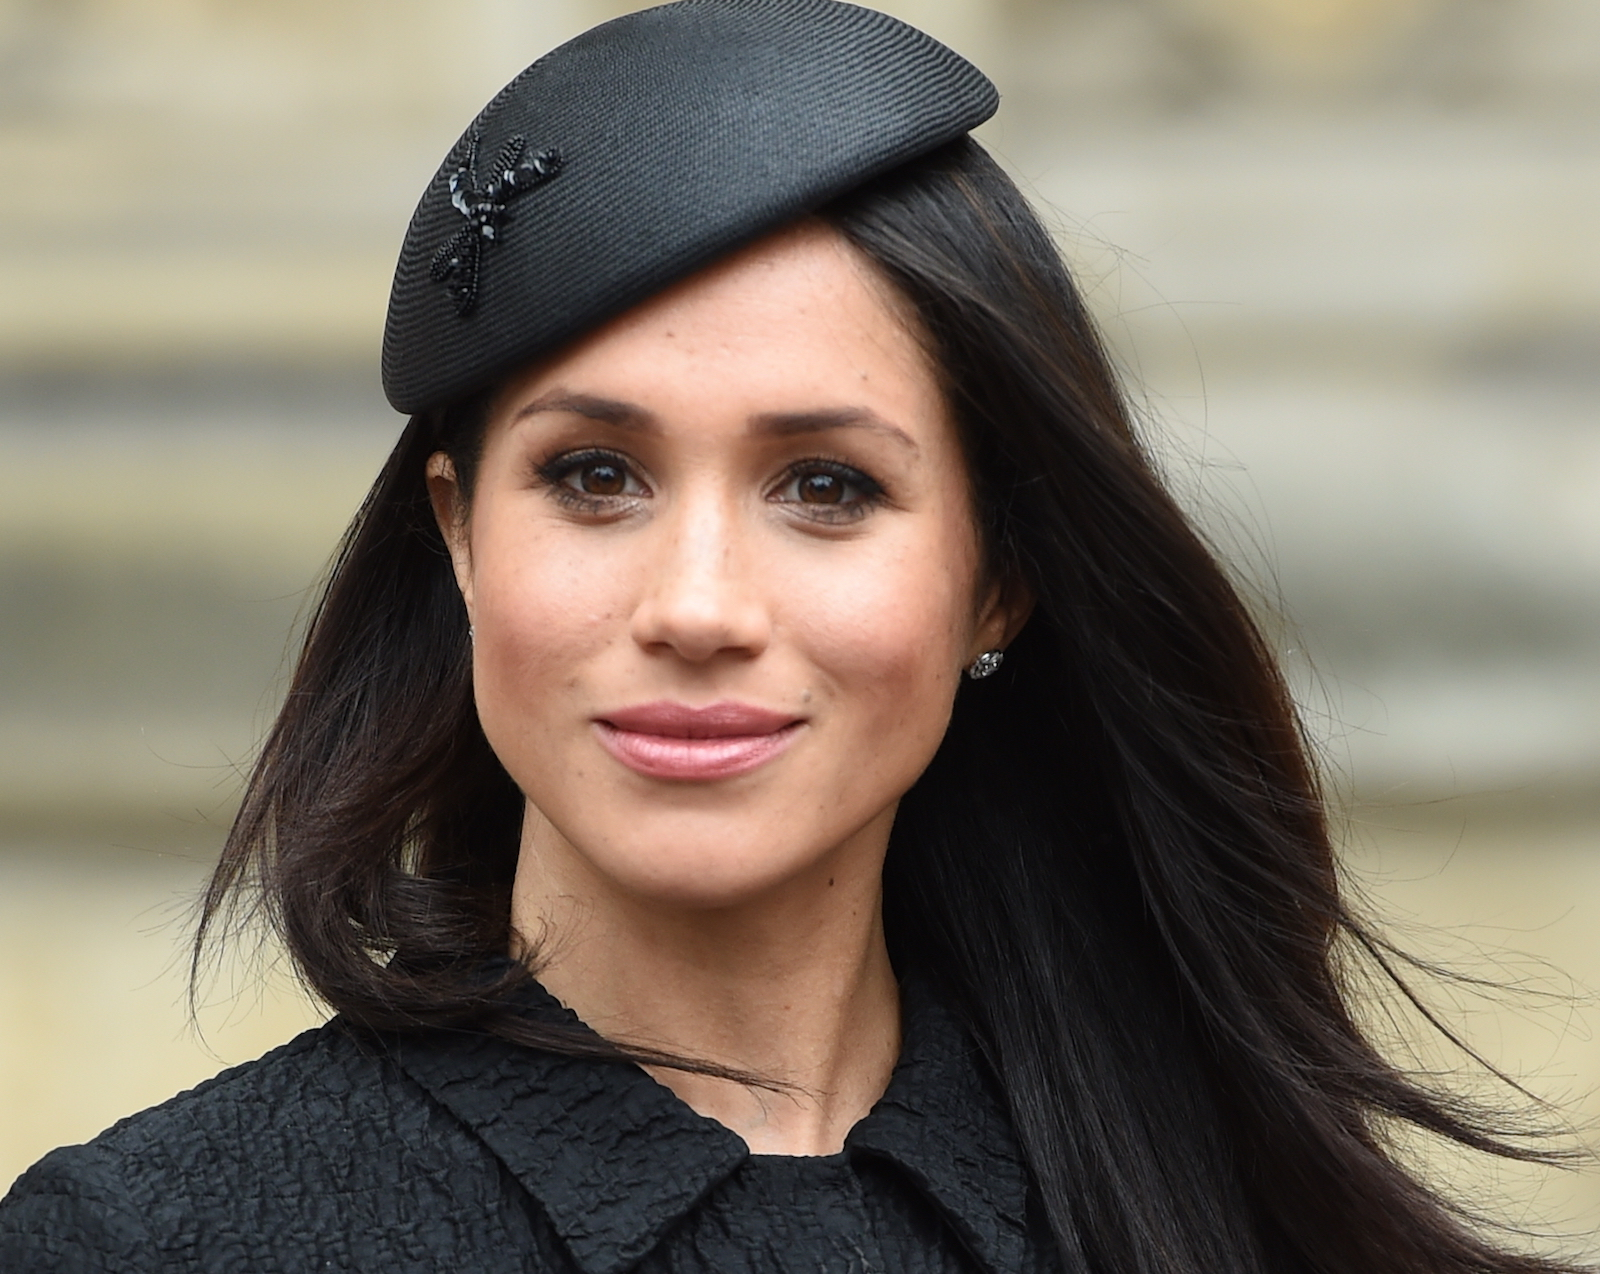 Everything You Need to Know About Meghan Markle's Transformation into a Full Royal